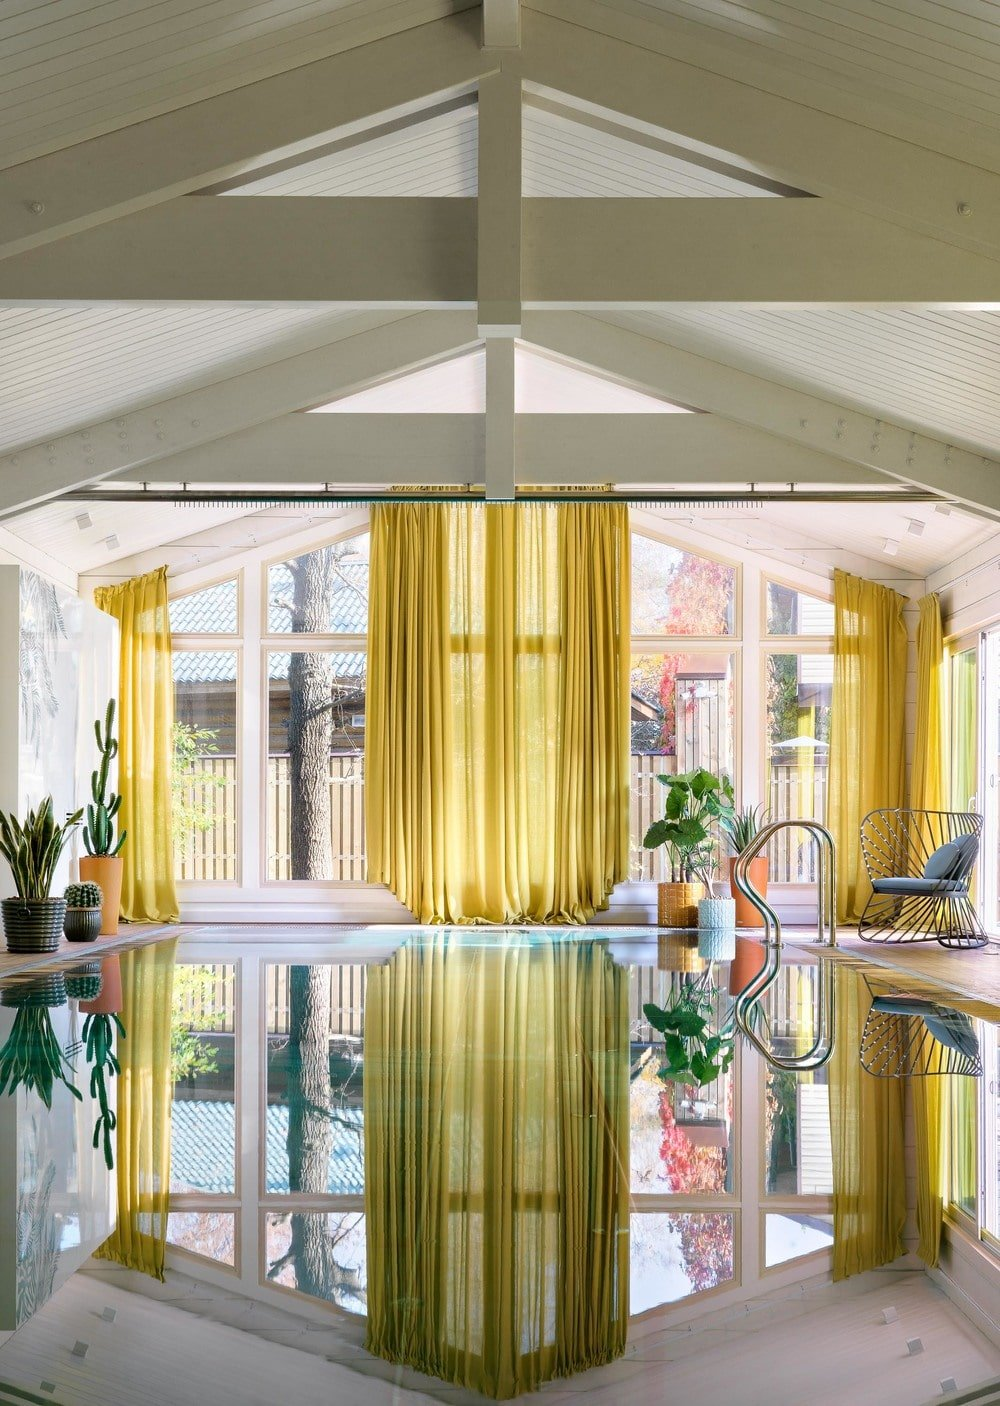 This house has a lush and luxurious indoor pool with a white cathedral ceiling that has exposed white beams complemented by the yellow curtains of the glass wall on the far side.